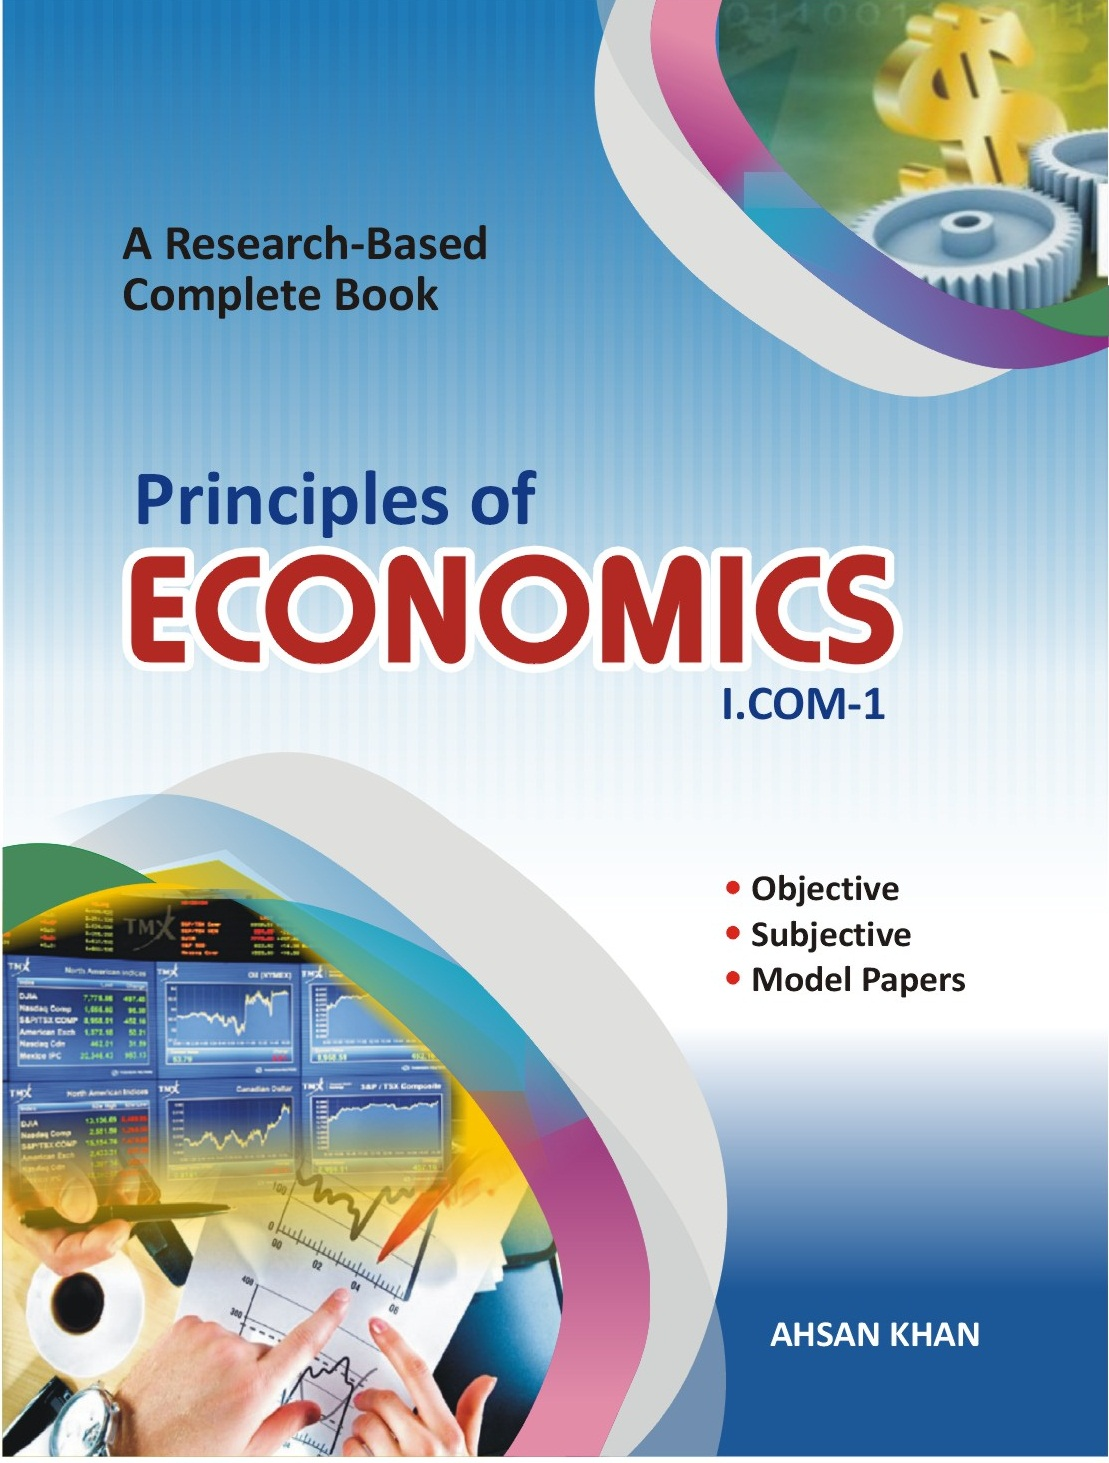 10 Principles of Economics